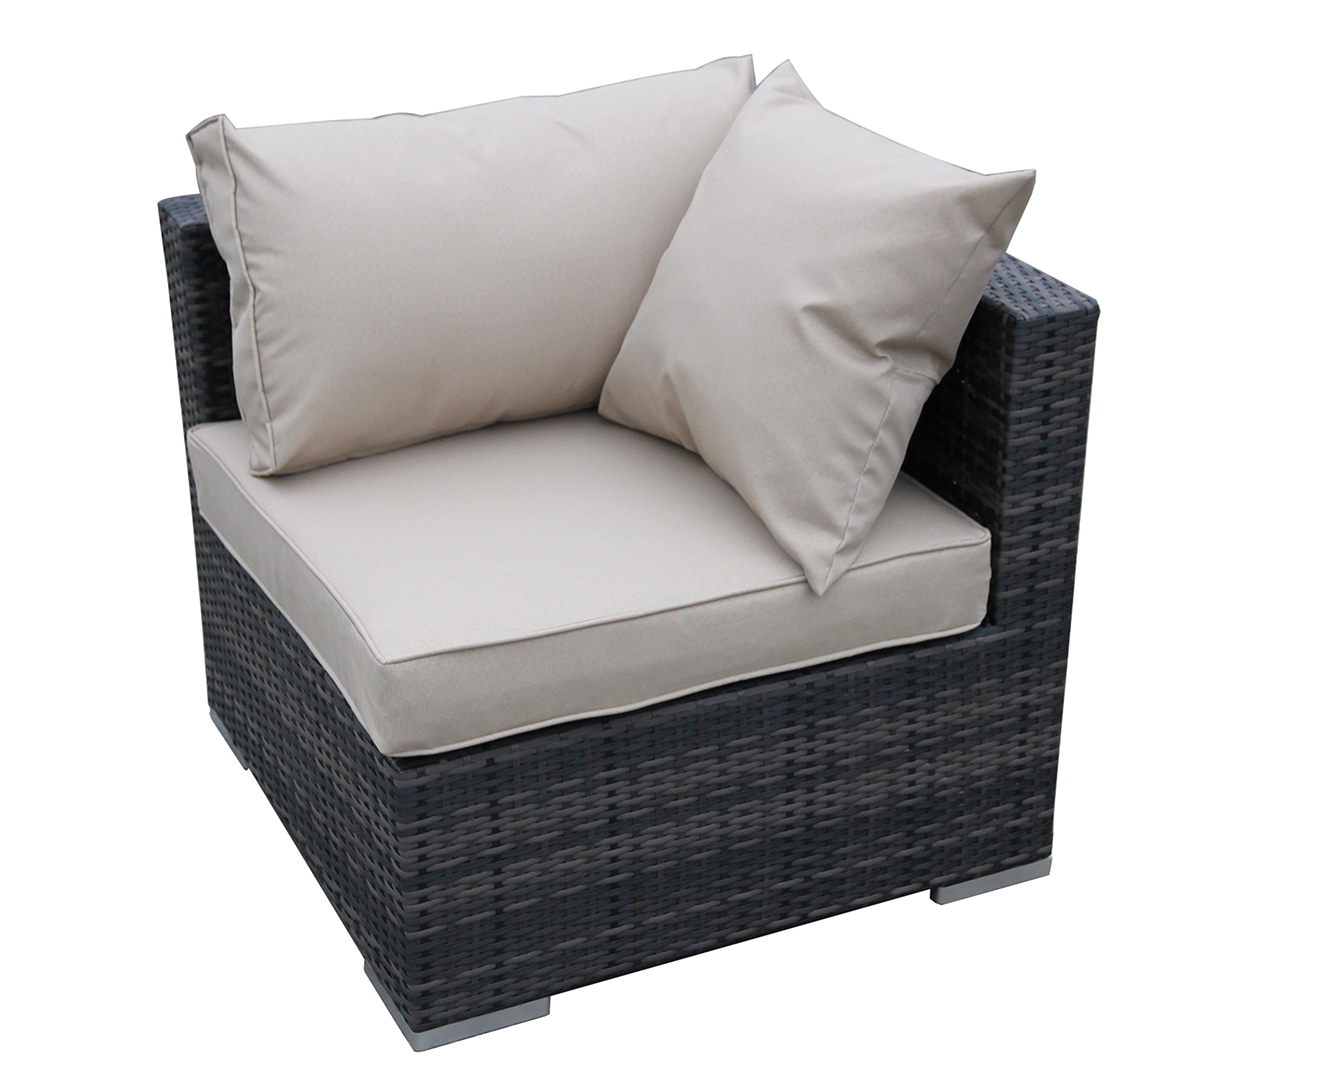 sunset wicker rattan sofa weave lounge curve couch outdoor pool 2 colour 7pc set ebay. Black Bedroom Furniture Sets. Home Design Ideas